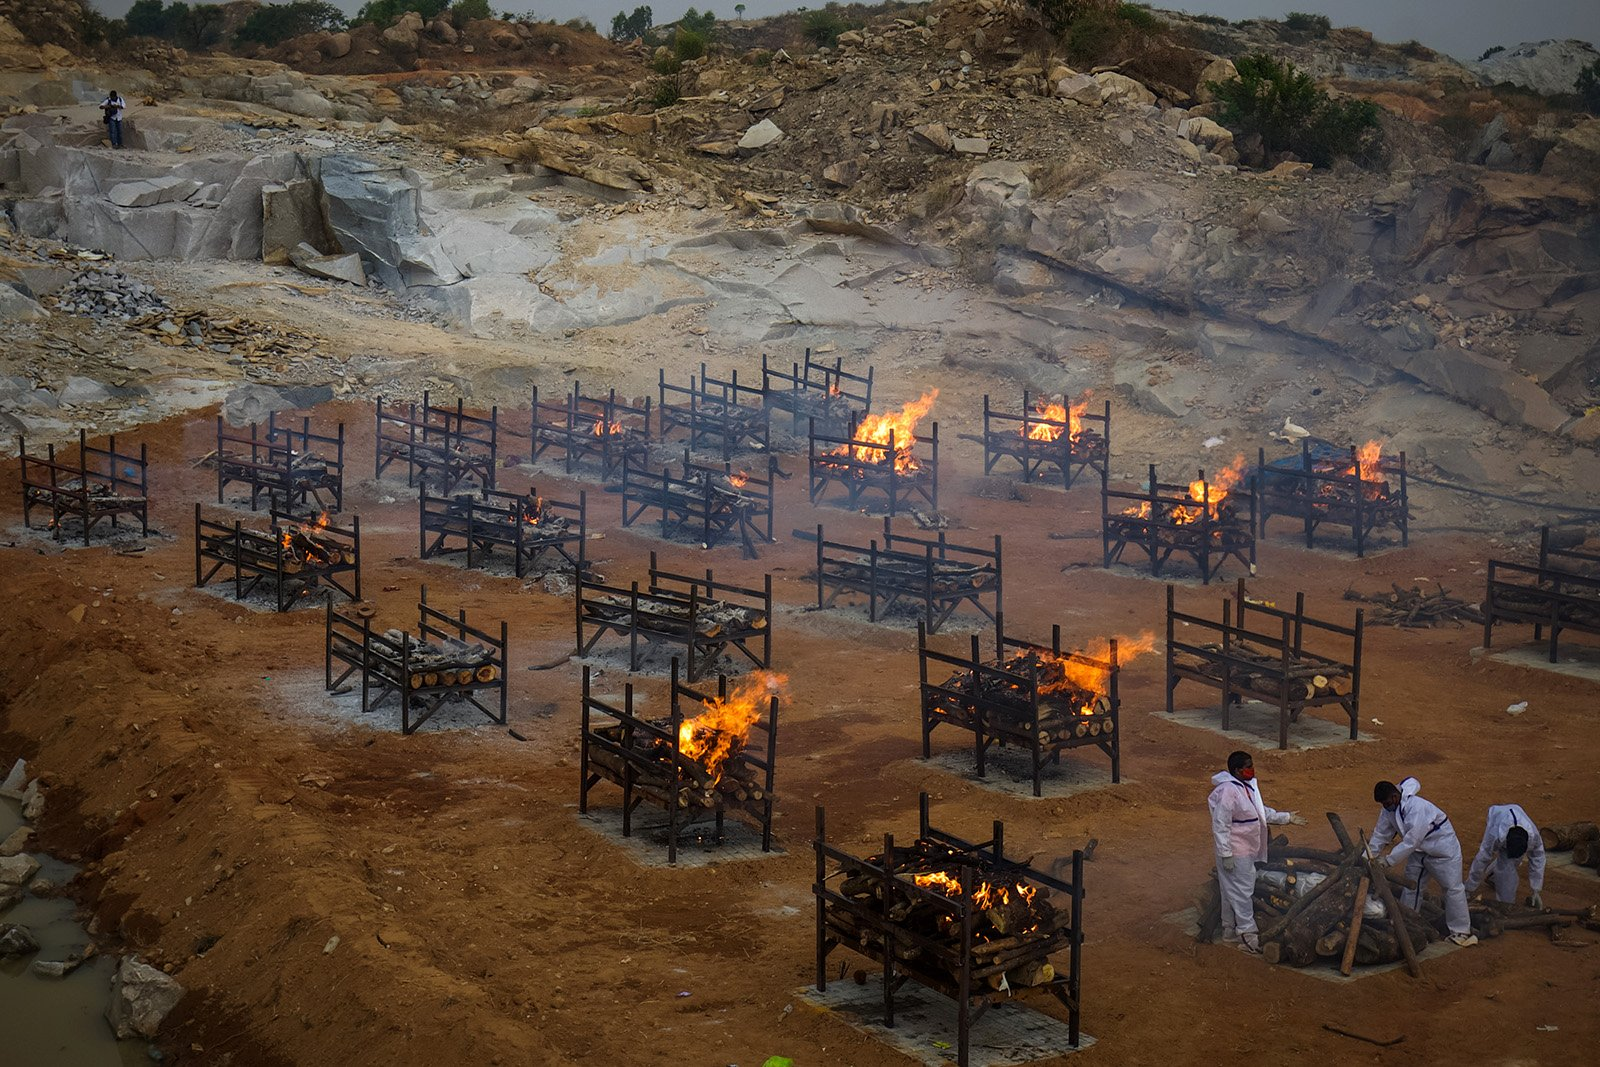 Mass cremations in the city of Bengaluru, India, due to the large number of COVID-19 deaths, April 30, 2021. (Photo by Abhishek Chinnappa/Getty Images)